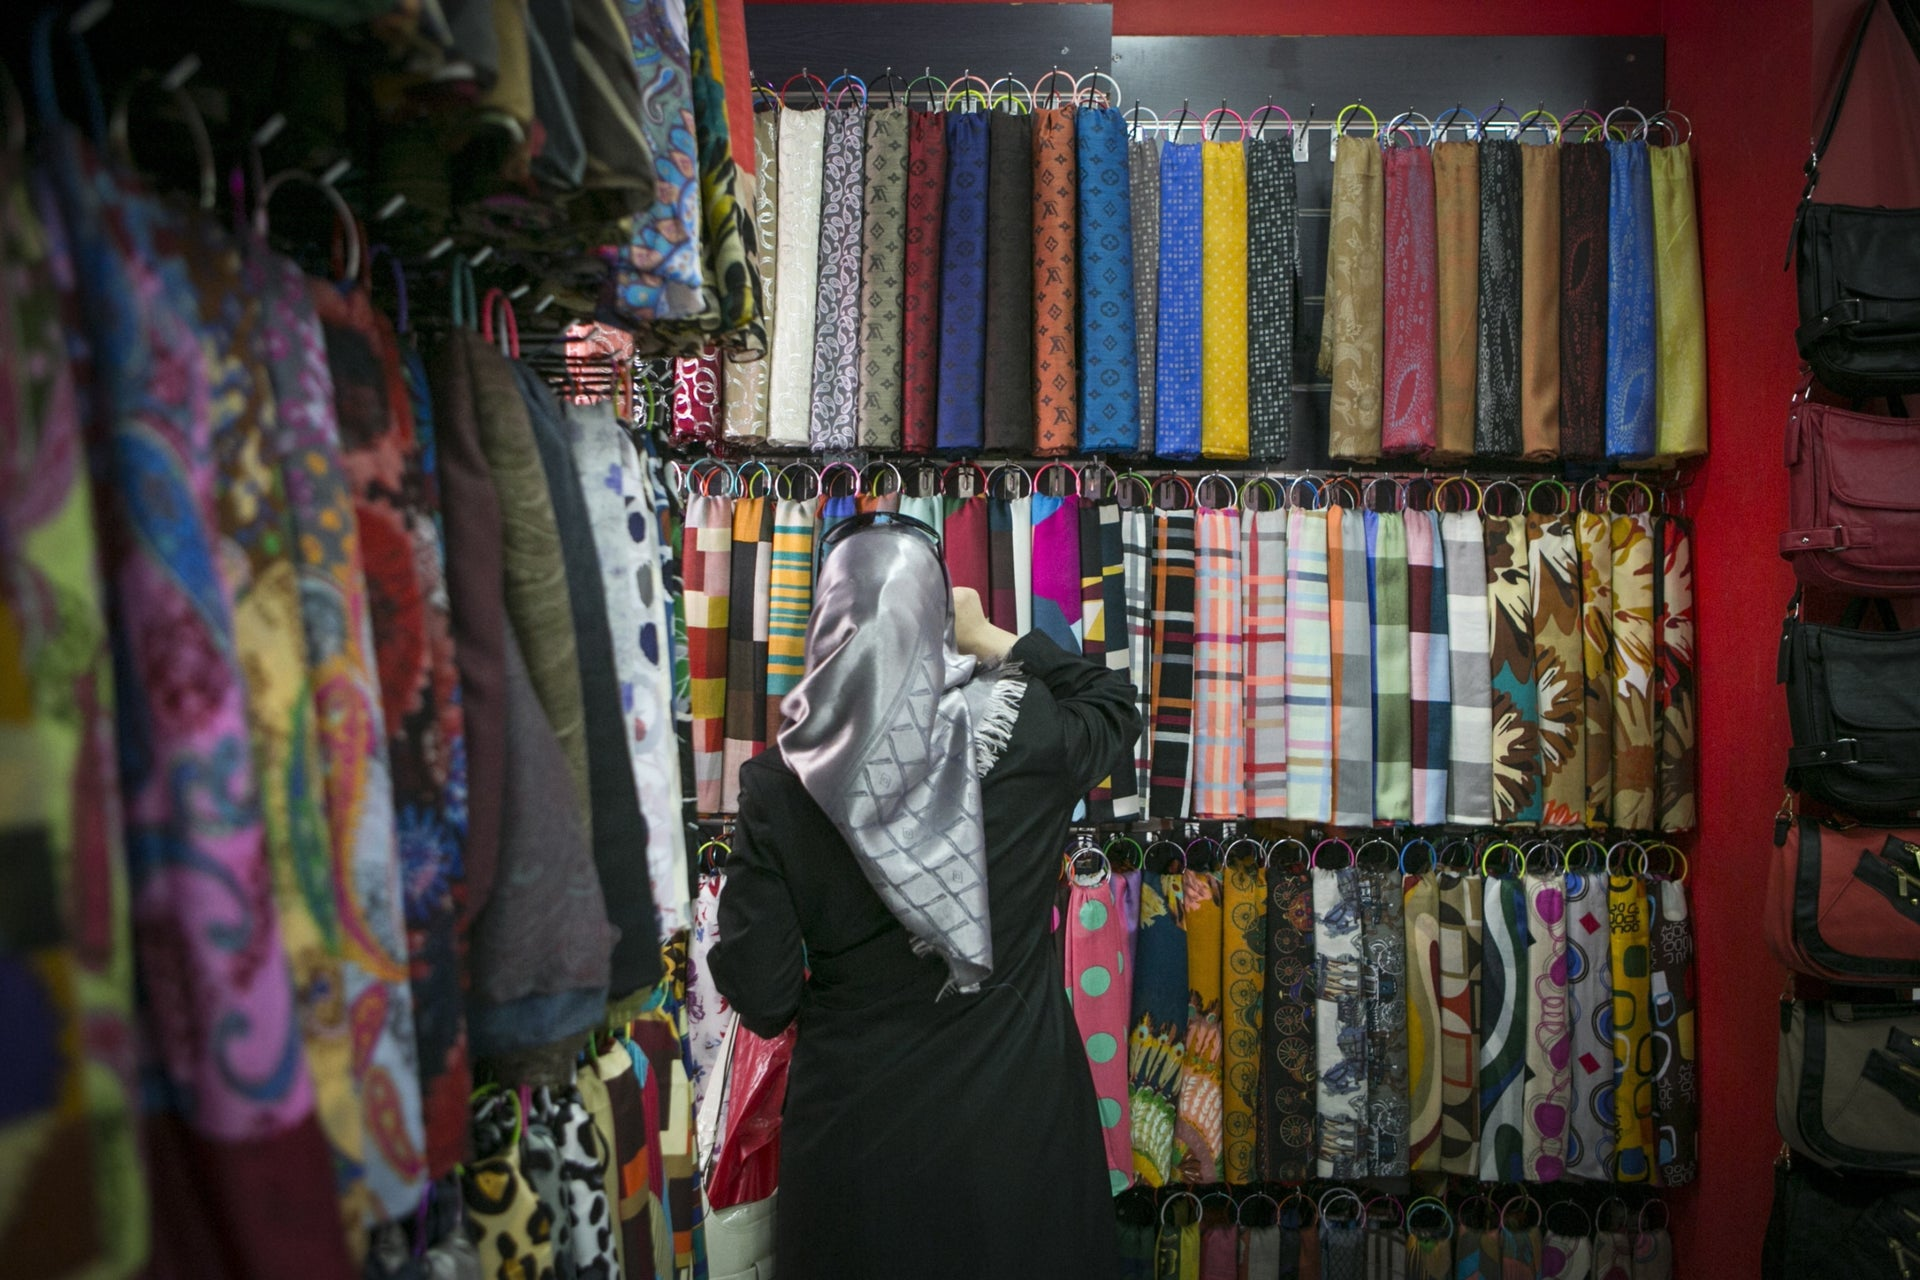 A woman browsing through rows of hijabs at a store in Ramallah.